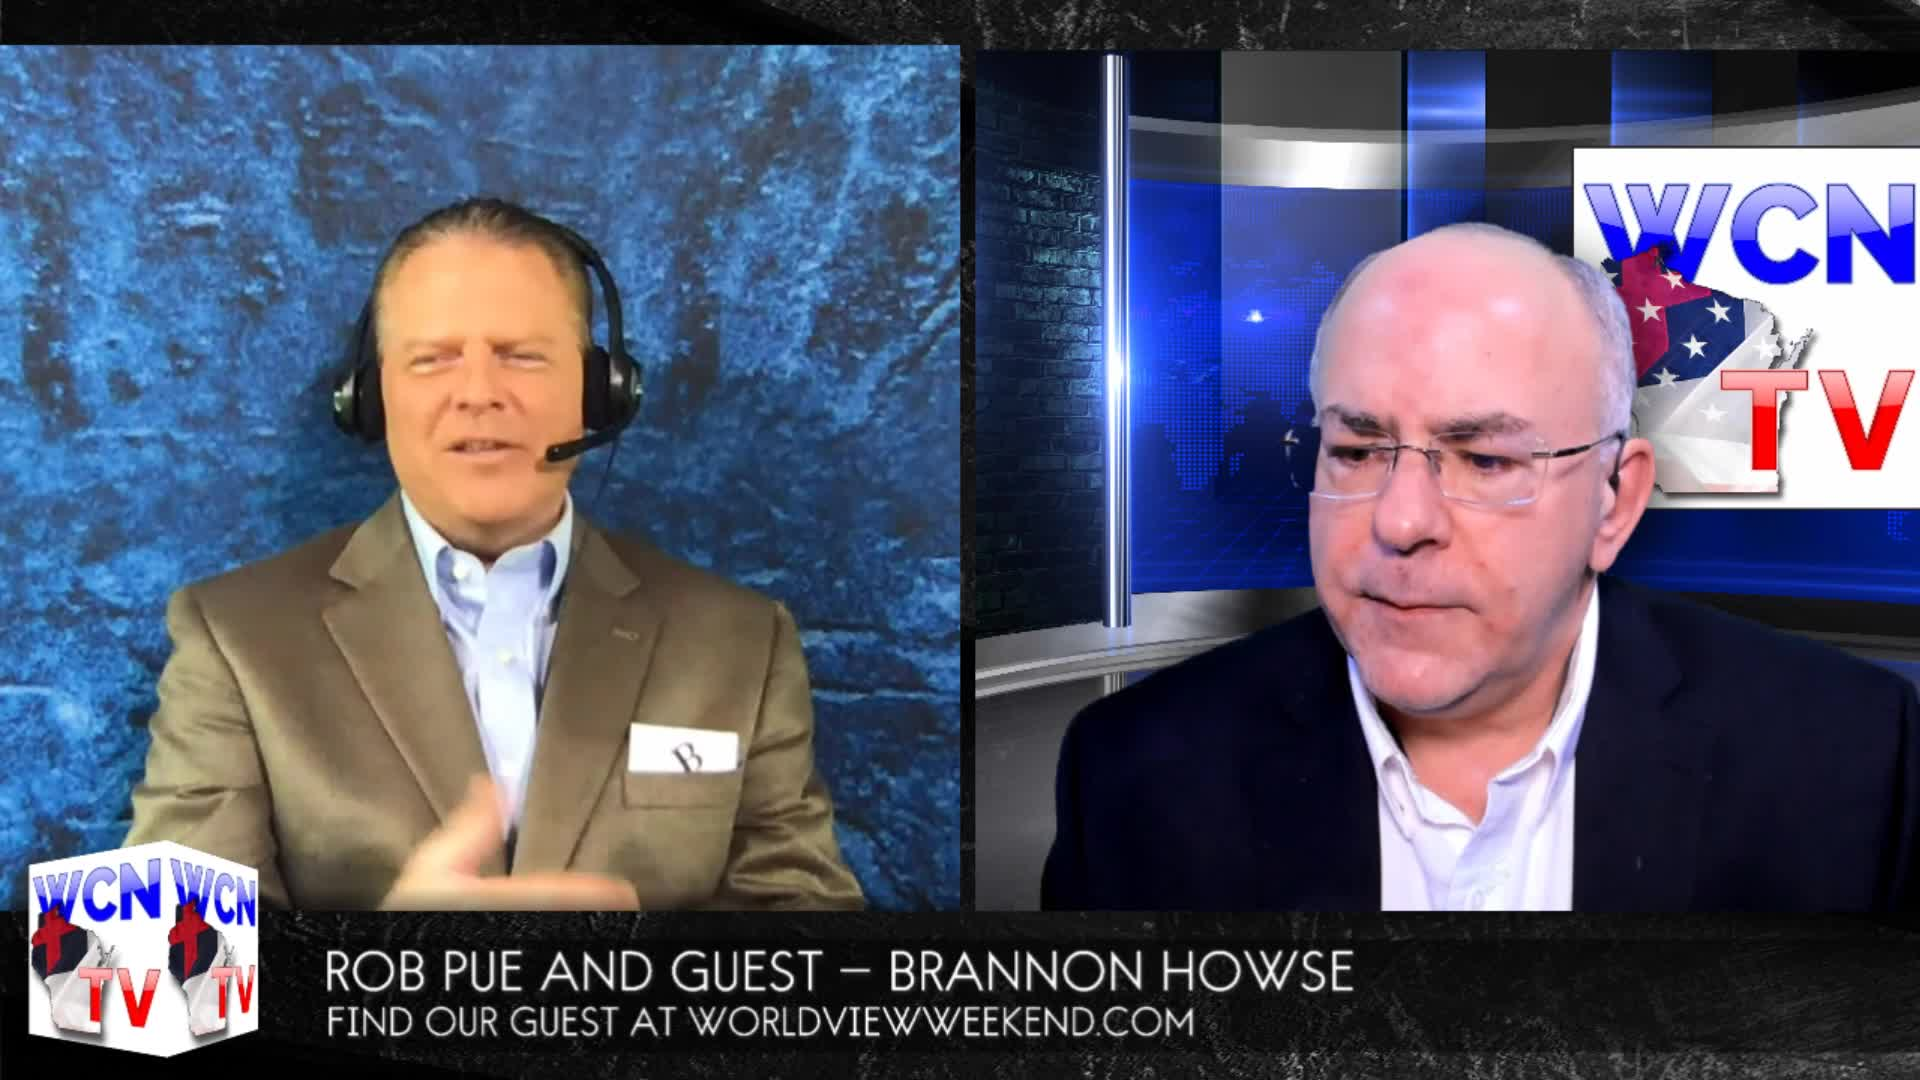 WCN-TV, May 20, 2020 with host Rob Pue and his Guest Brannon Howse